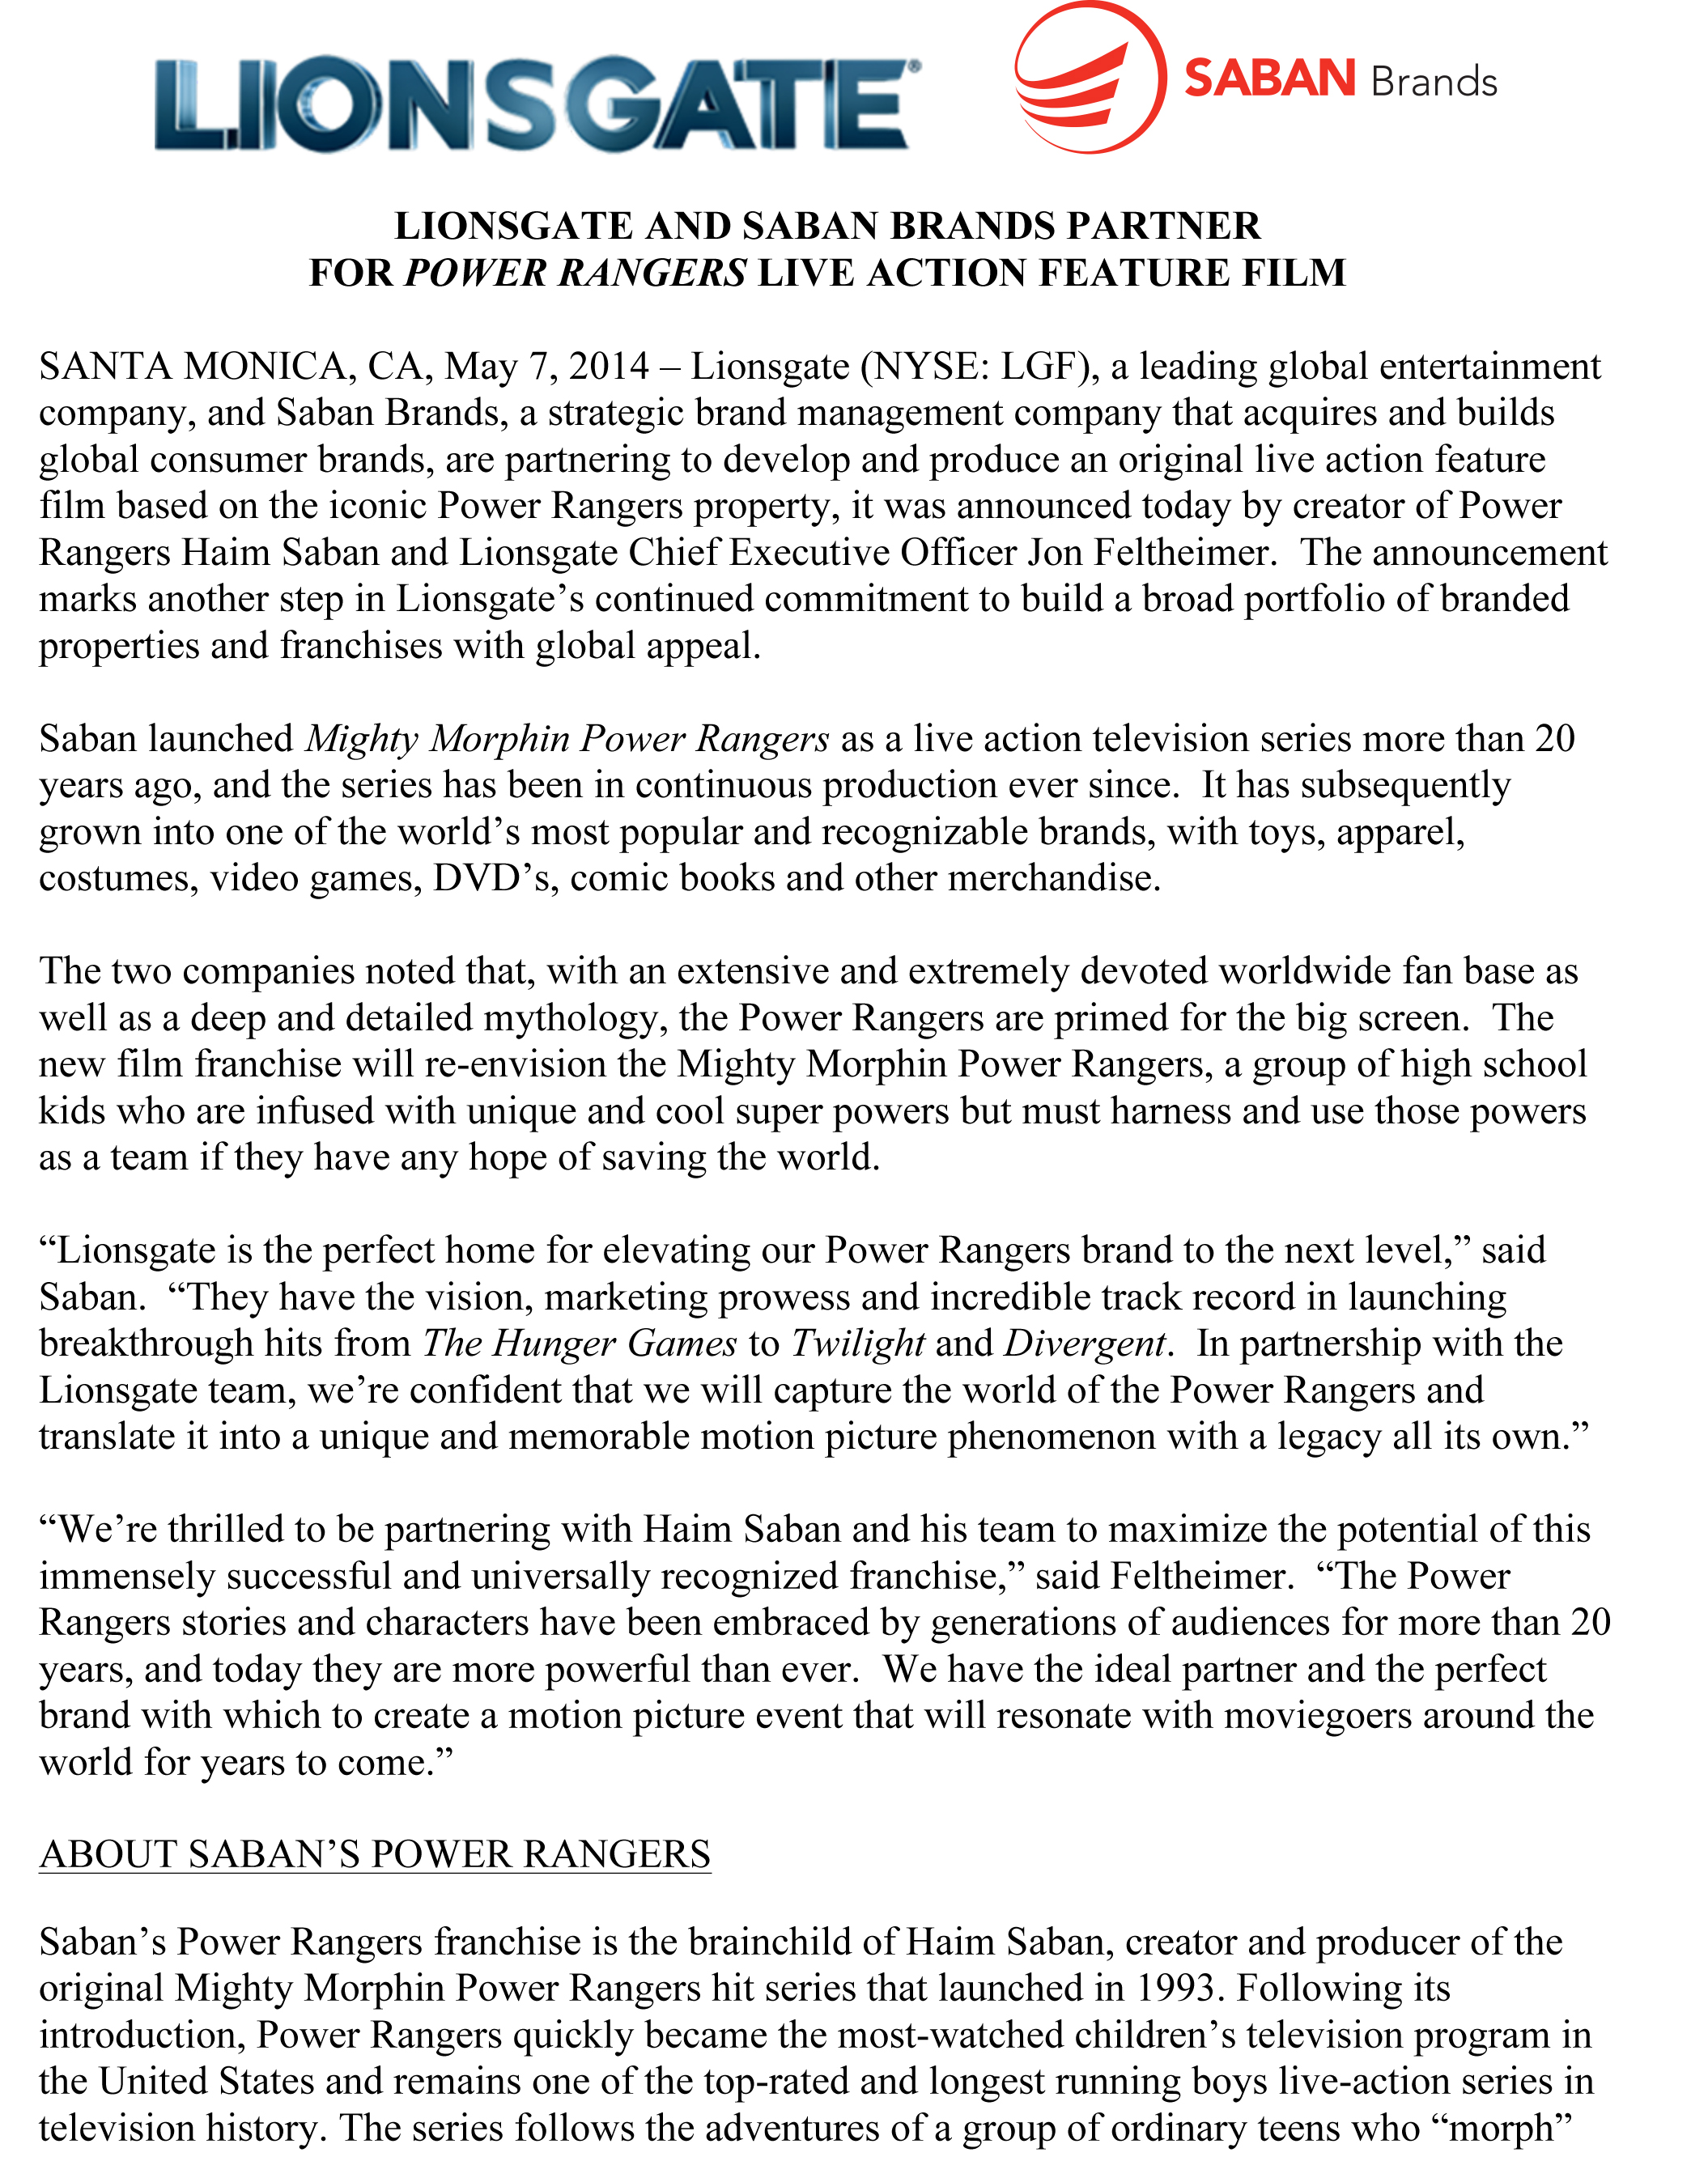 Microsoft Word - Lionsgate Saban - Press Release.docx